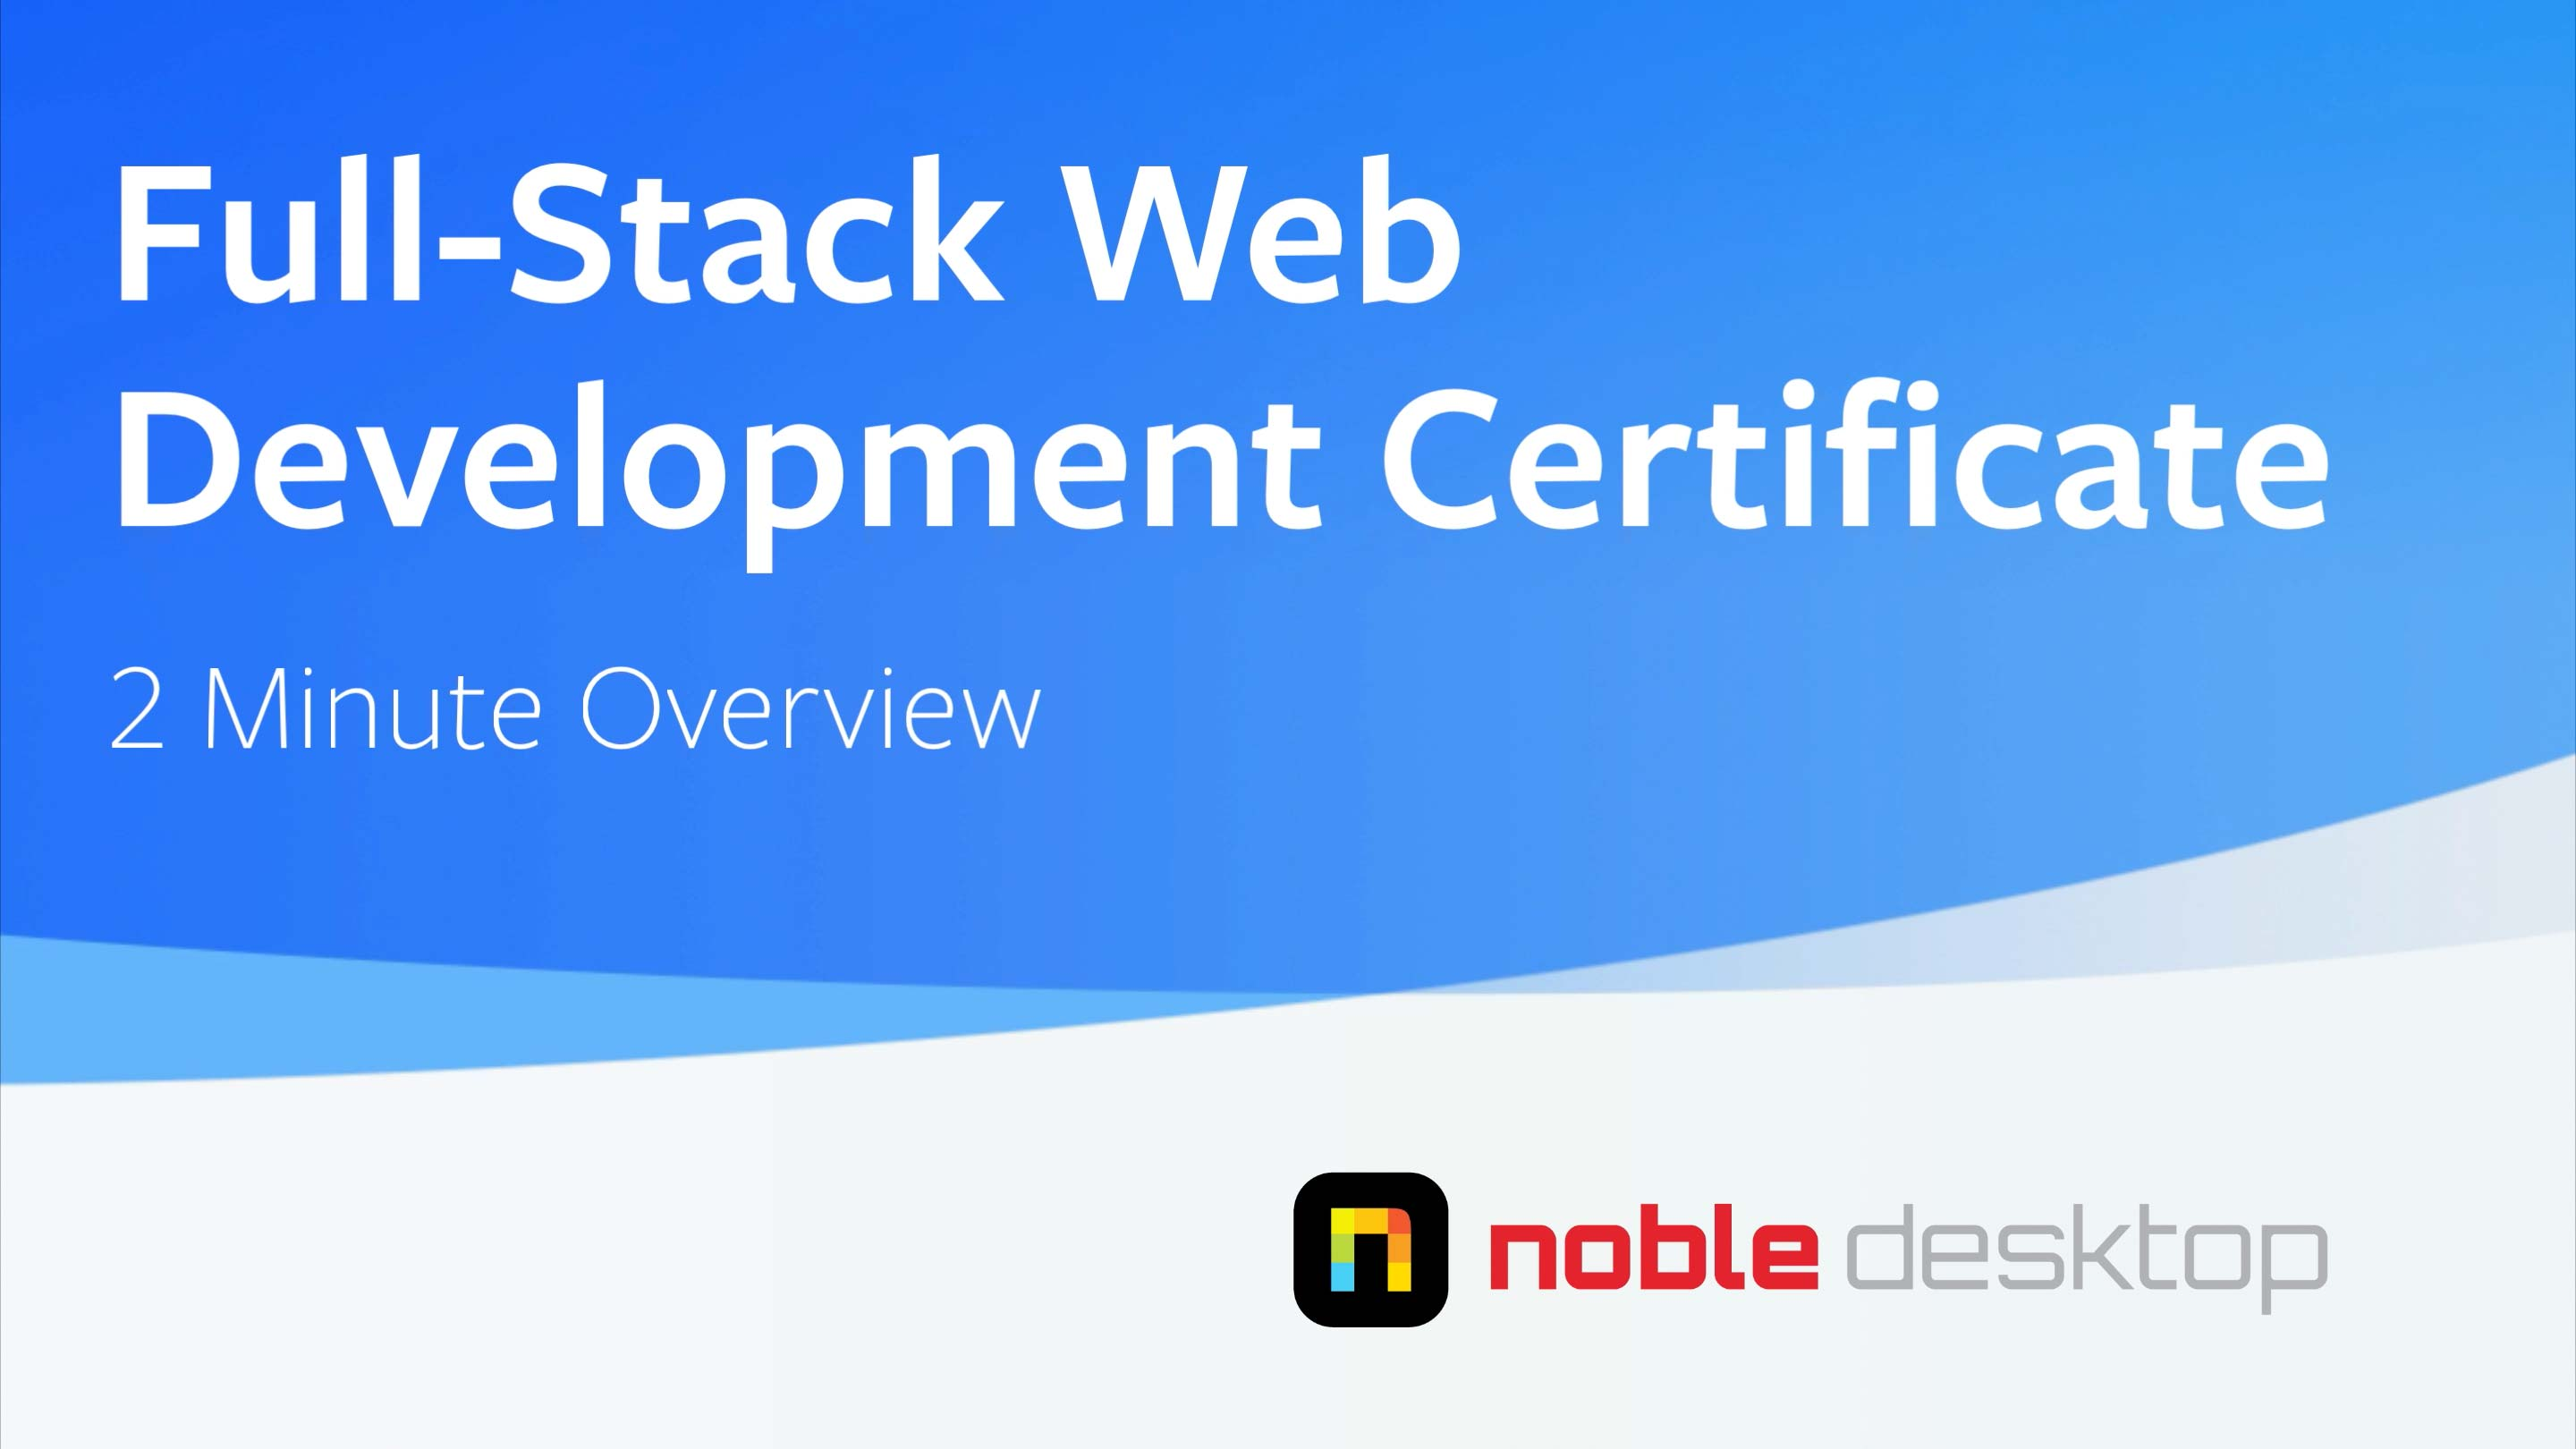 Full-Stack Web Development Certificate Class Overview